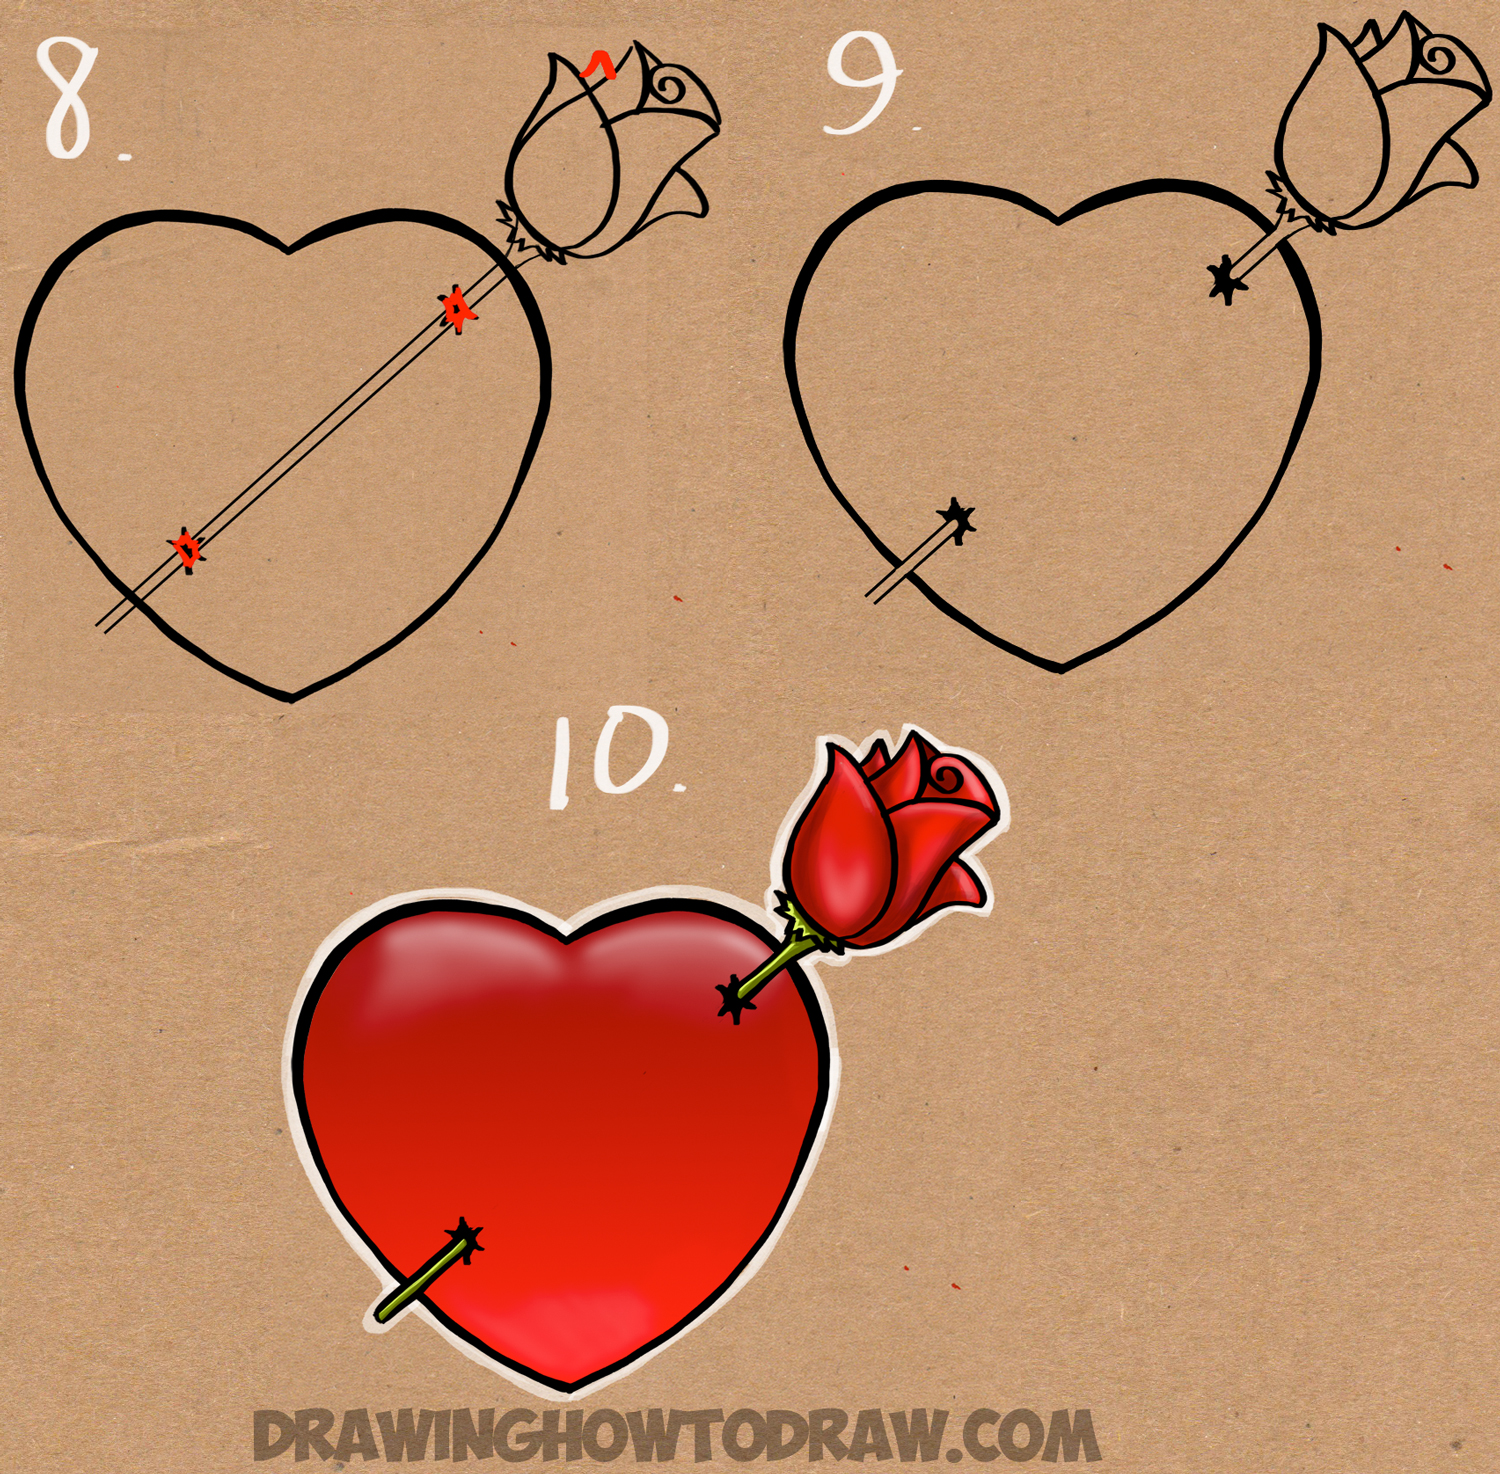 1500x1474 How To Draw A Heart With A Rose Piercing It Like An Arrow